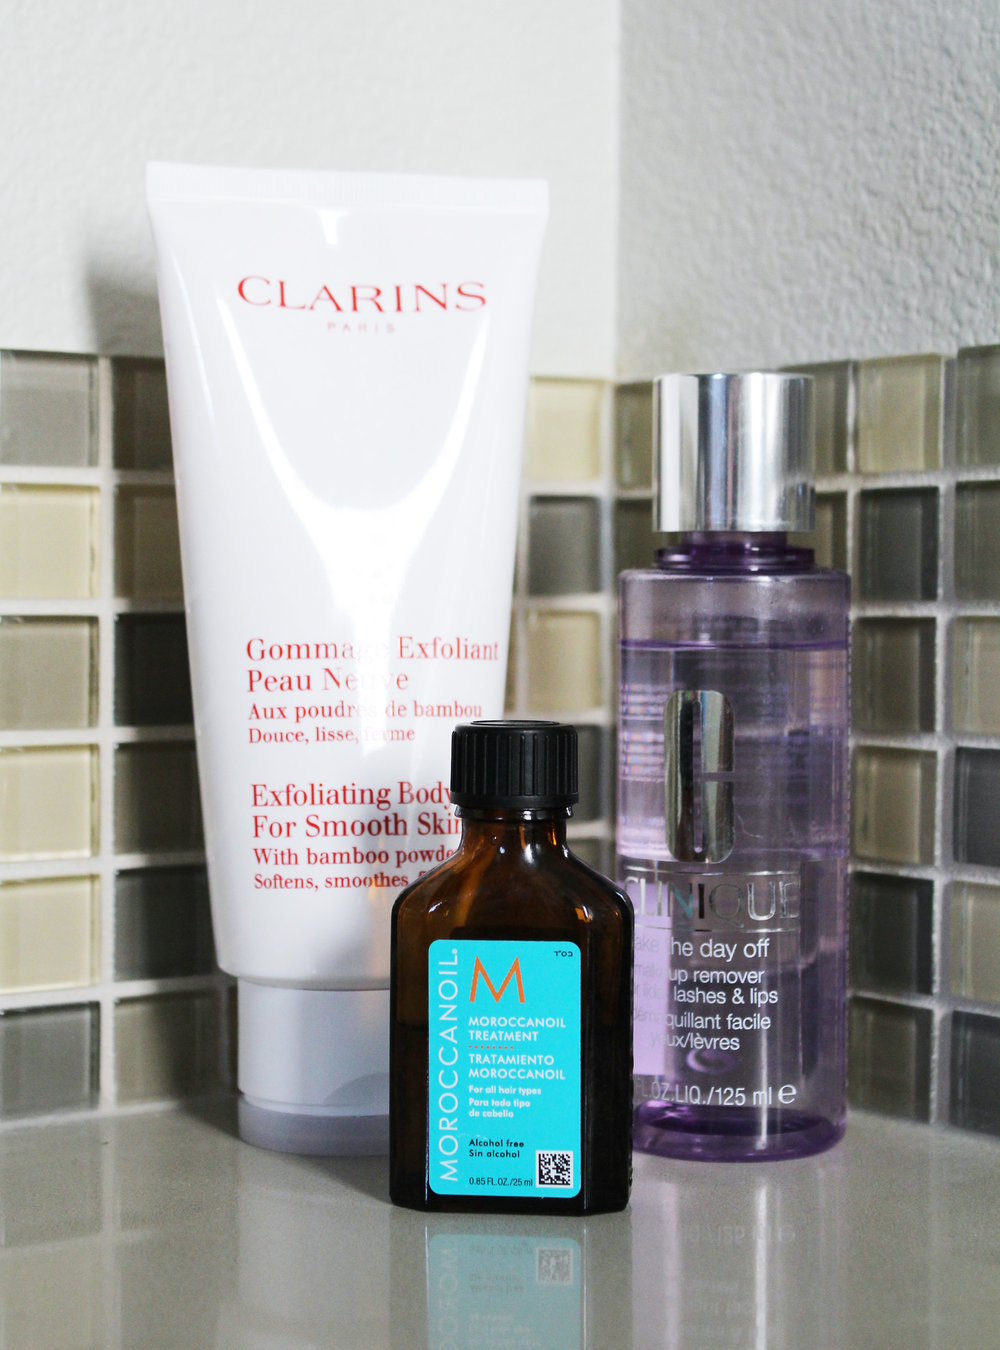 3 additions to shower routine: Clinique makeup remover, Clarins body scrub, Moroccanoil treatment — Cotton Cashmere Cat Hair